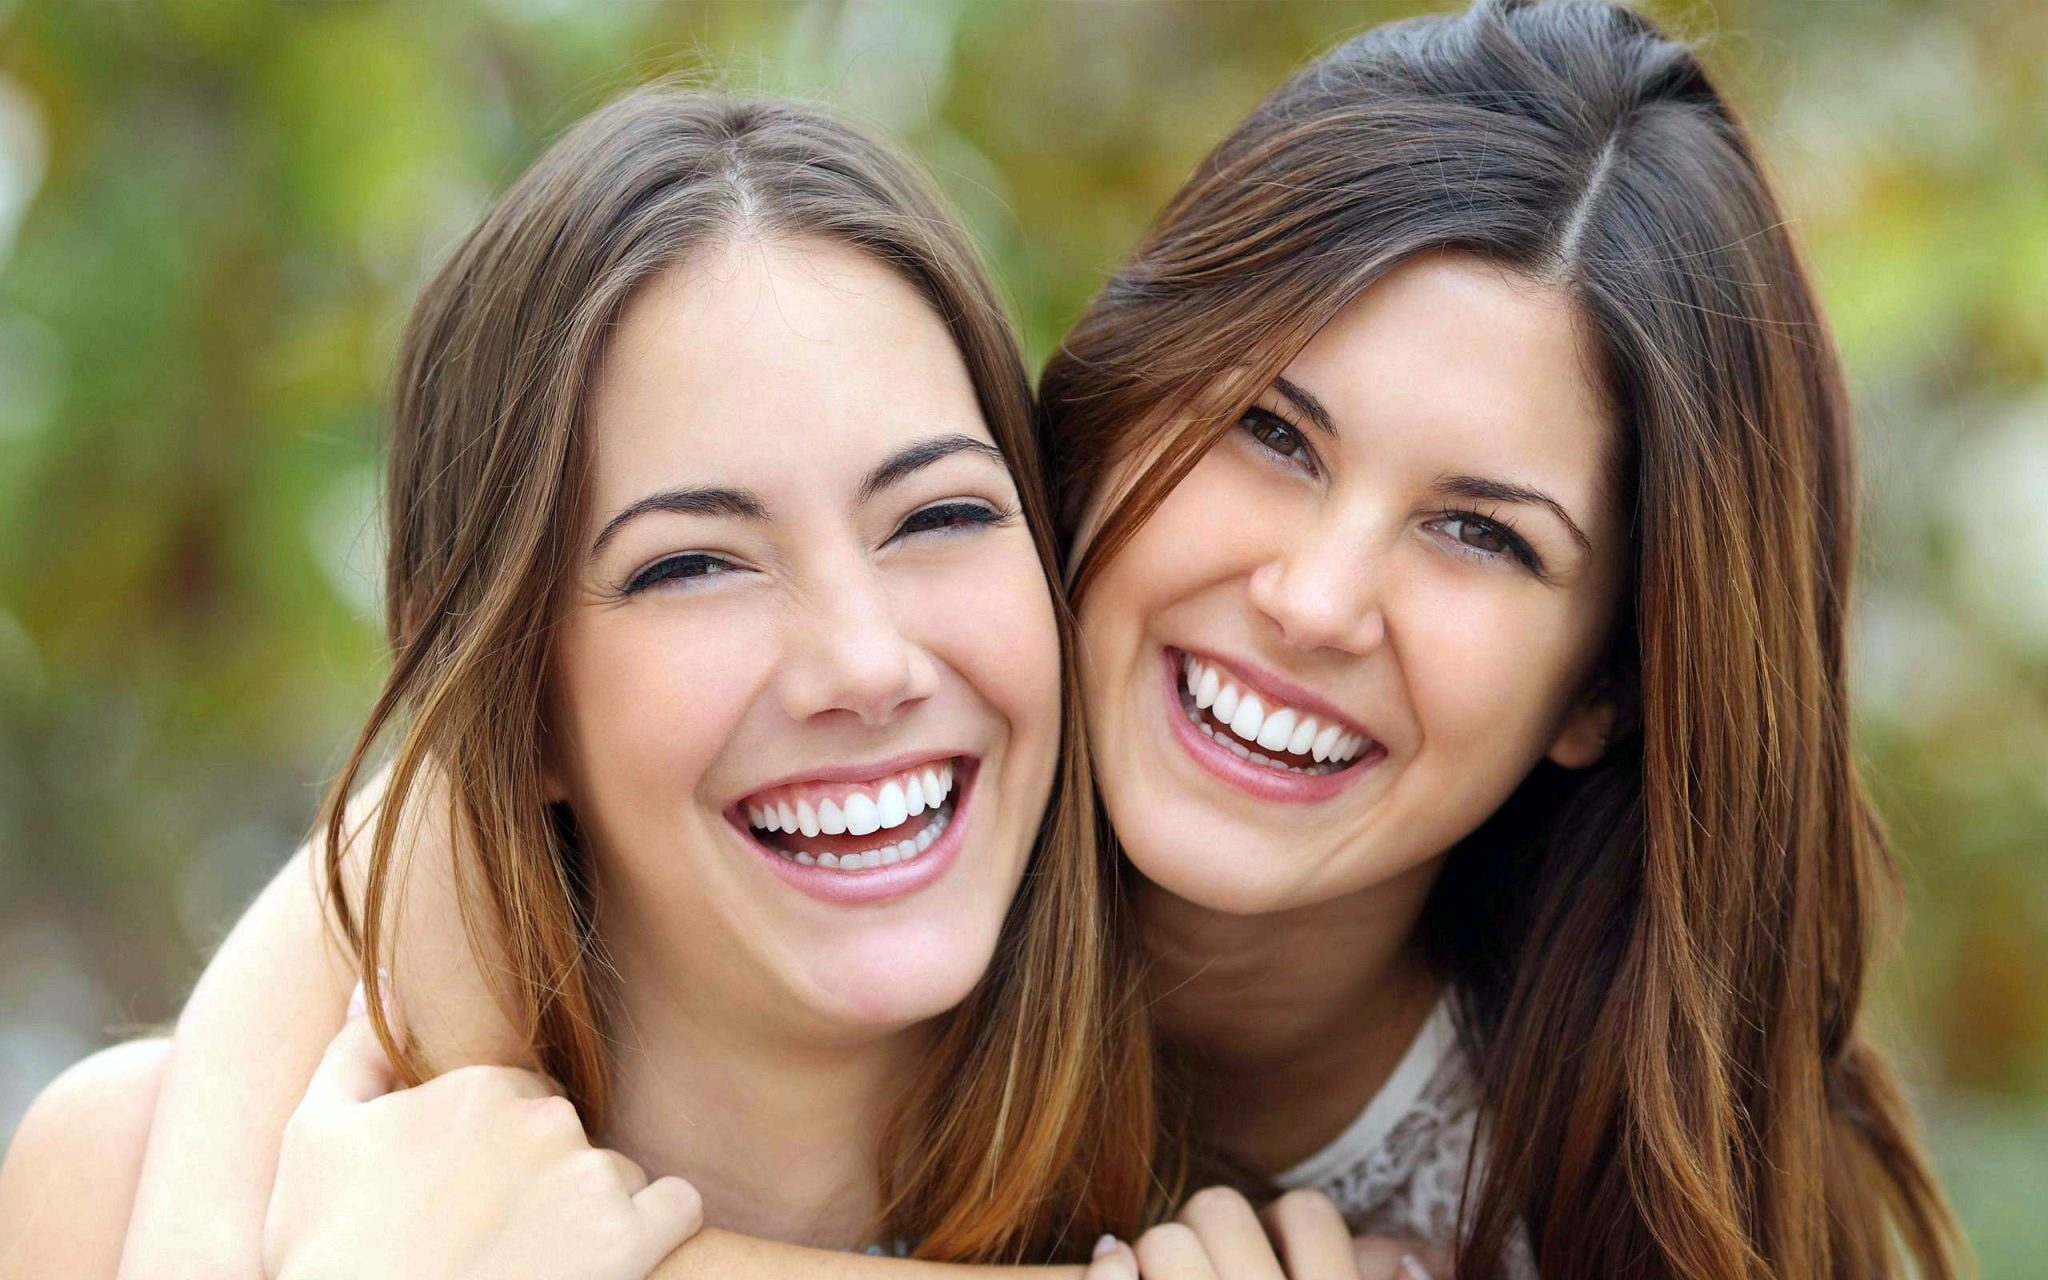 Are you more prone to cavities?